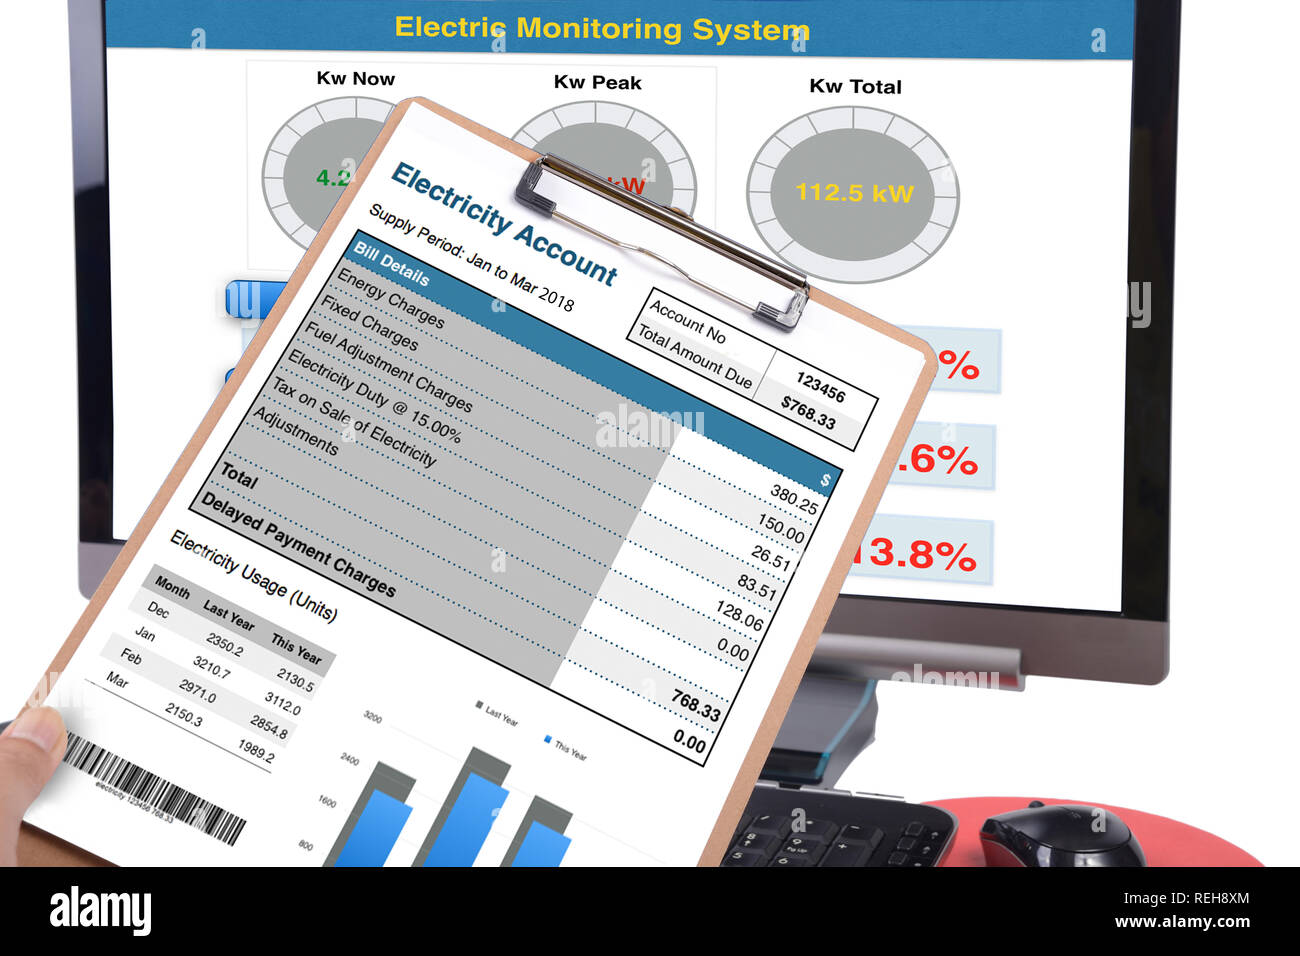 Electricity usage bill on clipboard with computer display showing electricity monitoring system on screen. - Stock Image